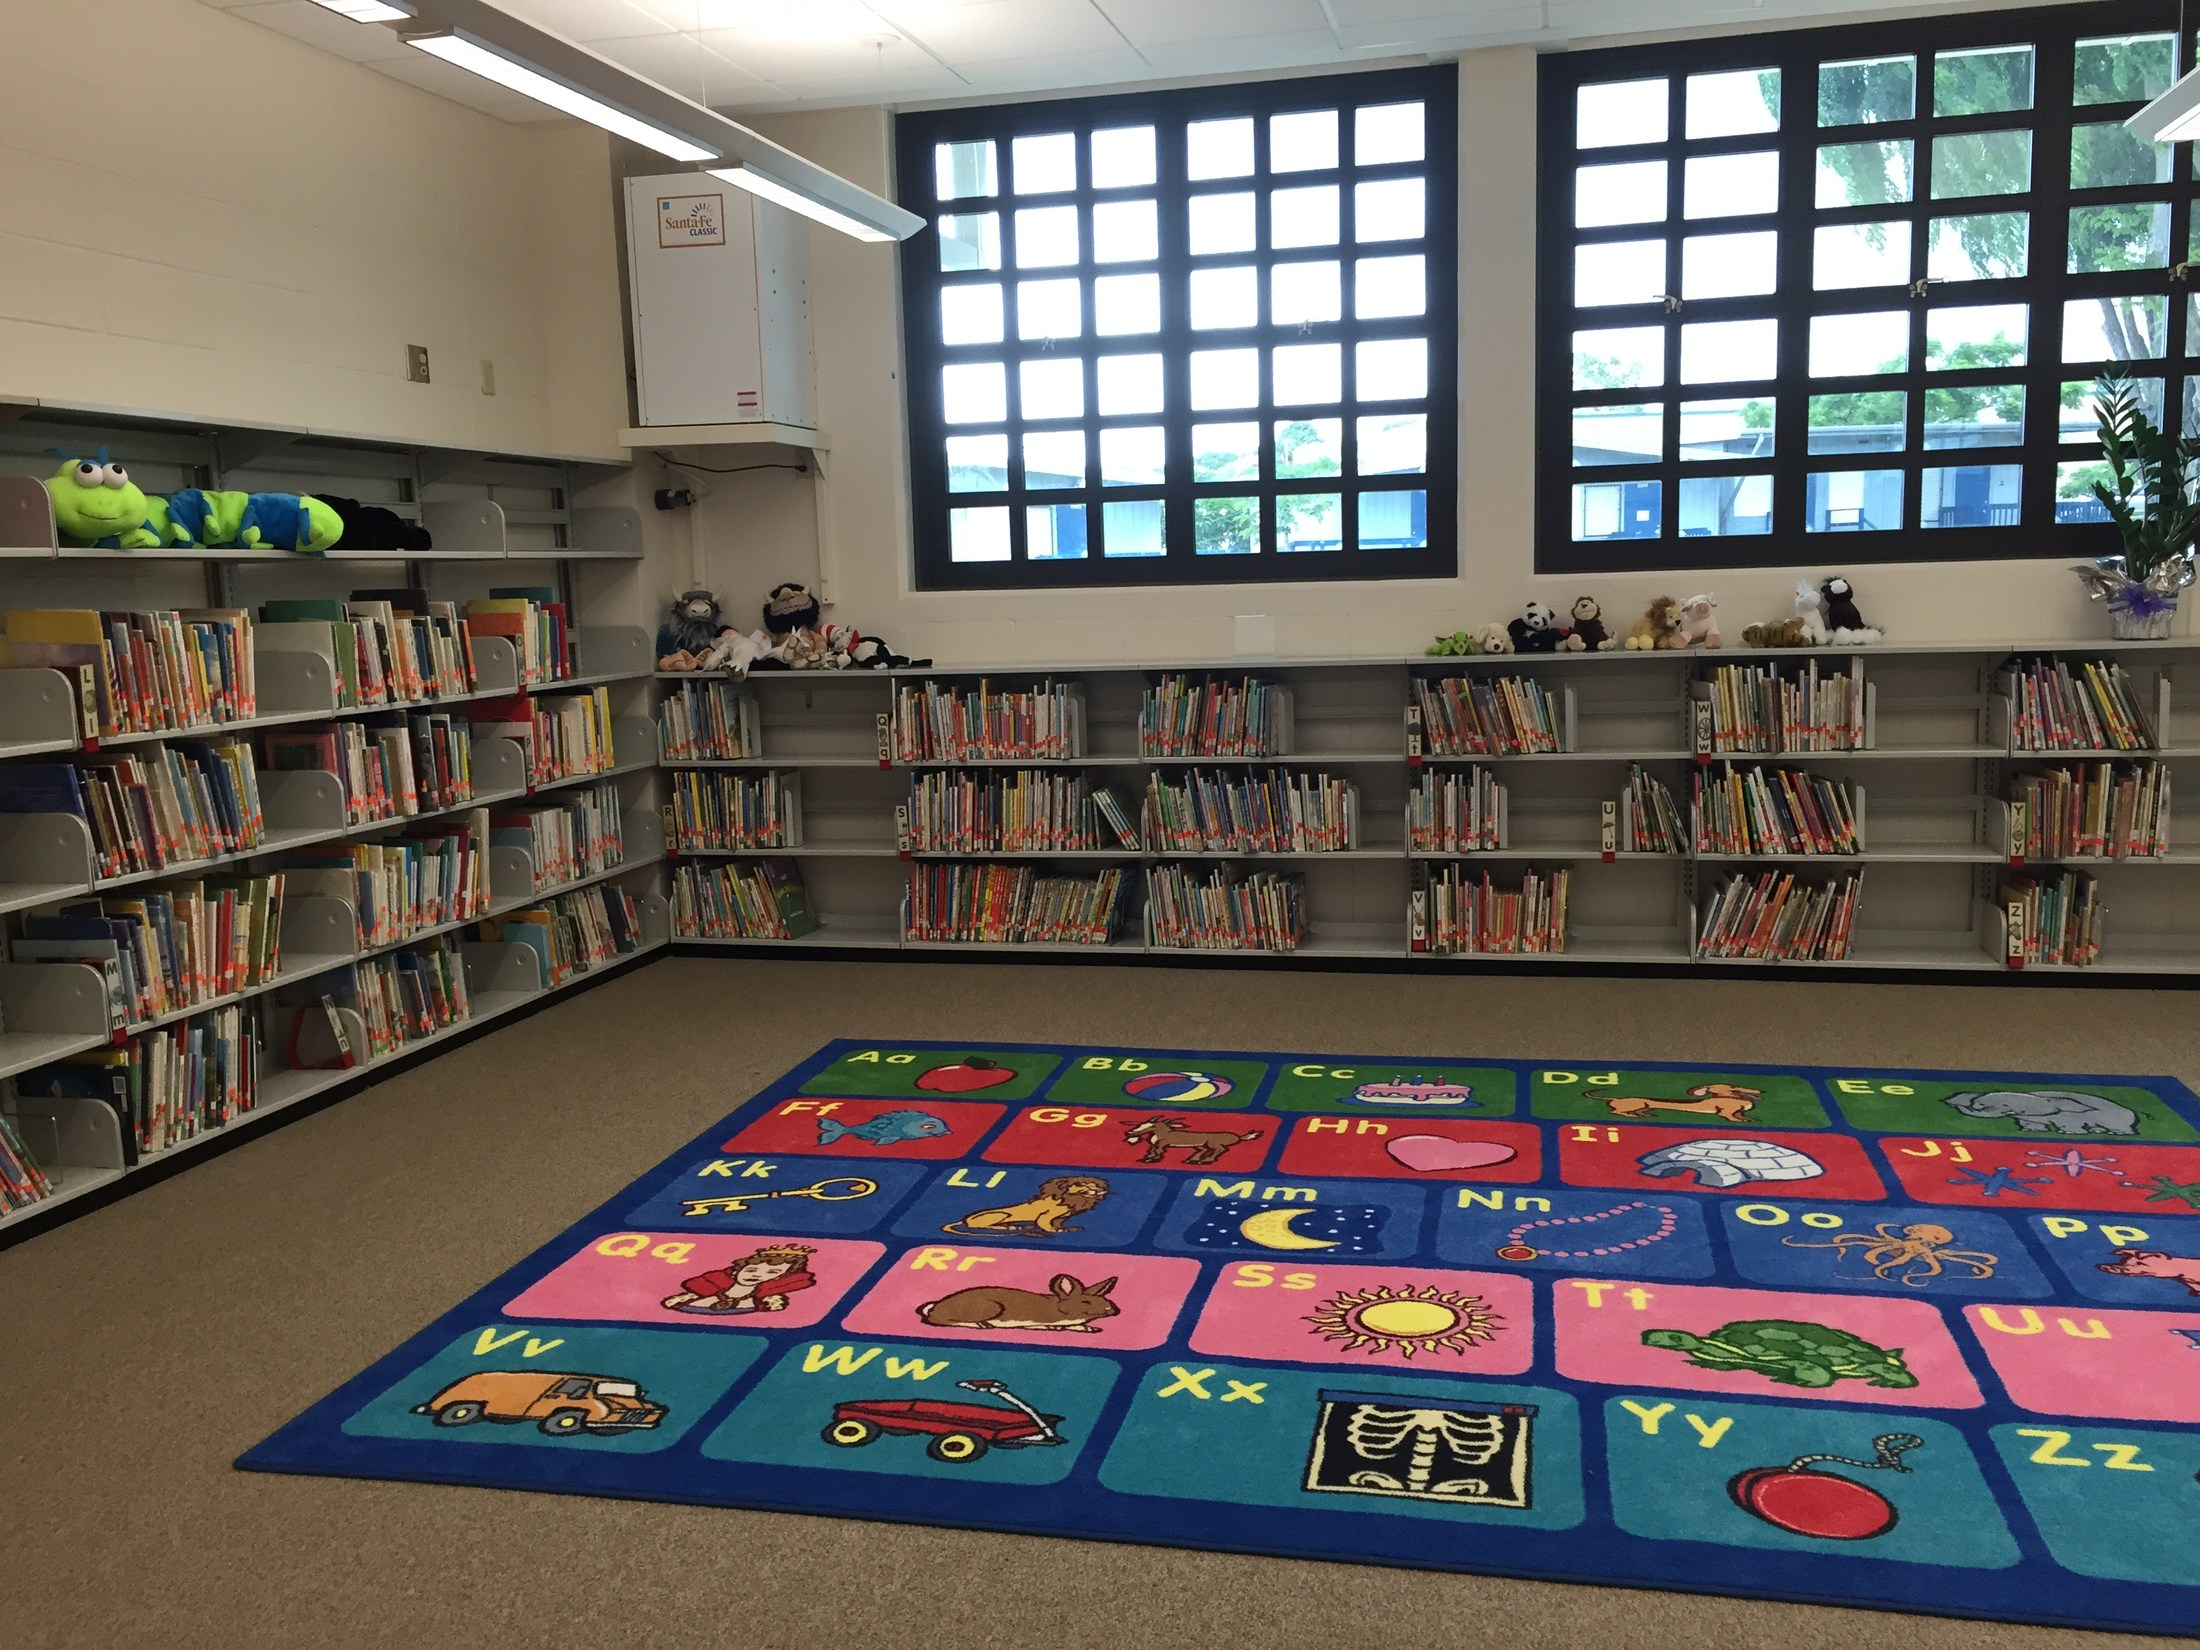 The easy picture books section in the library.